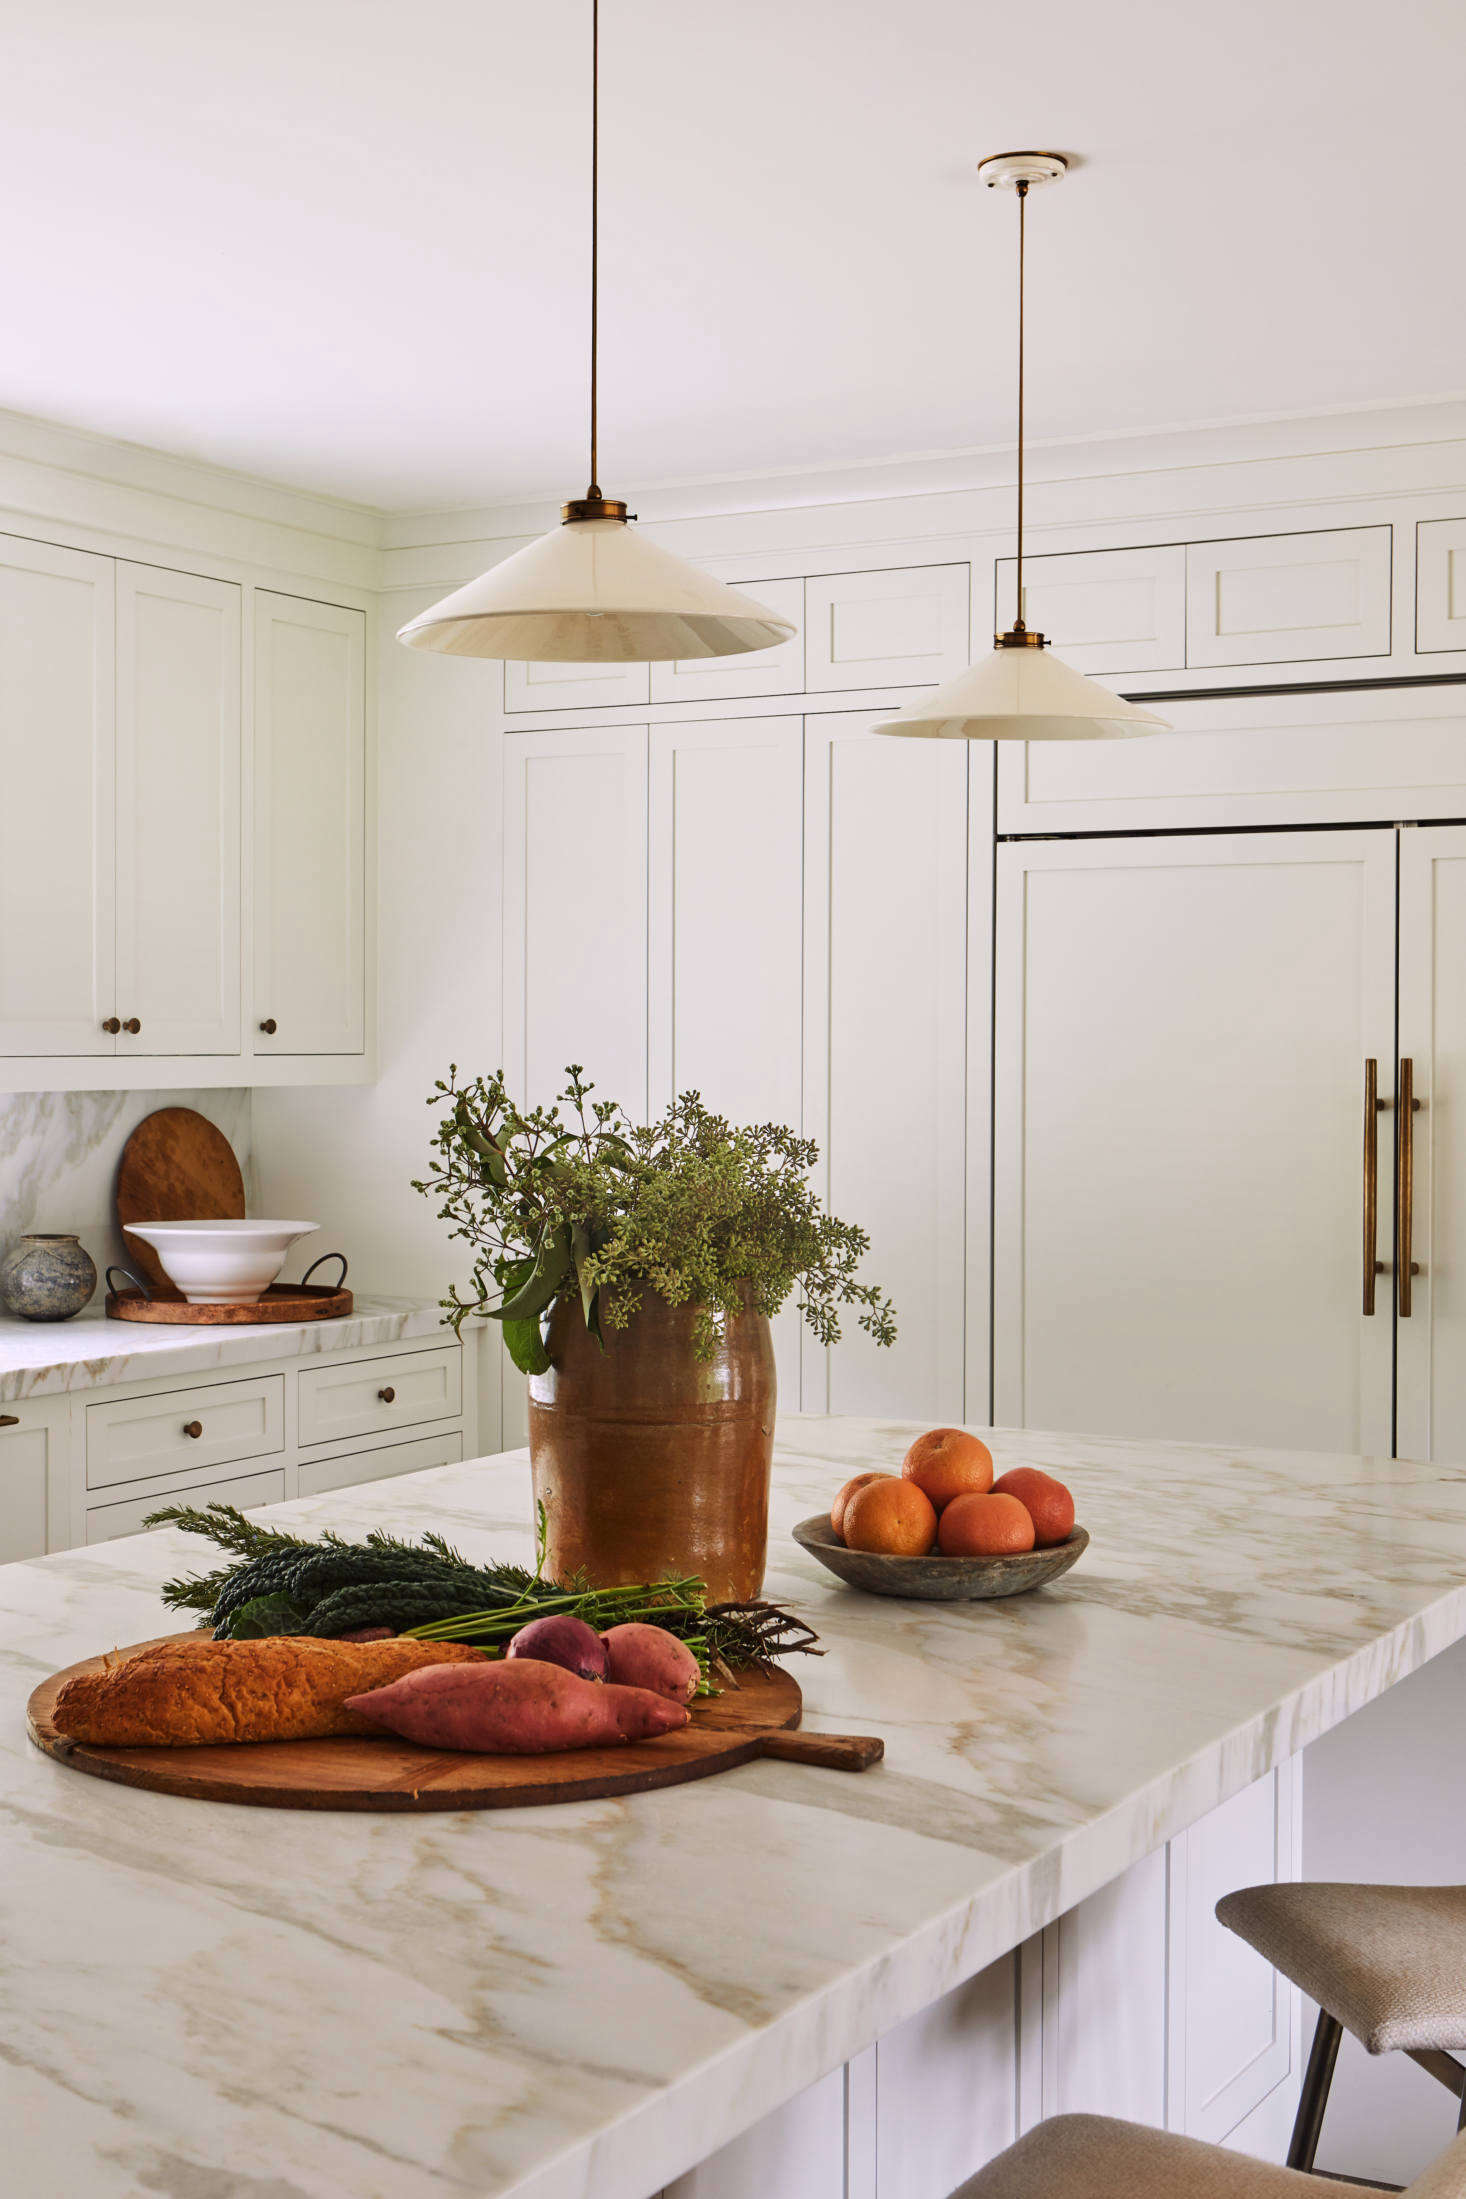 The owners themselves selected Calacatta Gold marble (with a &#8